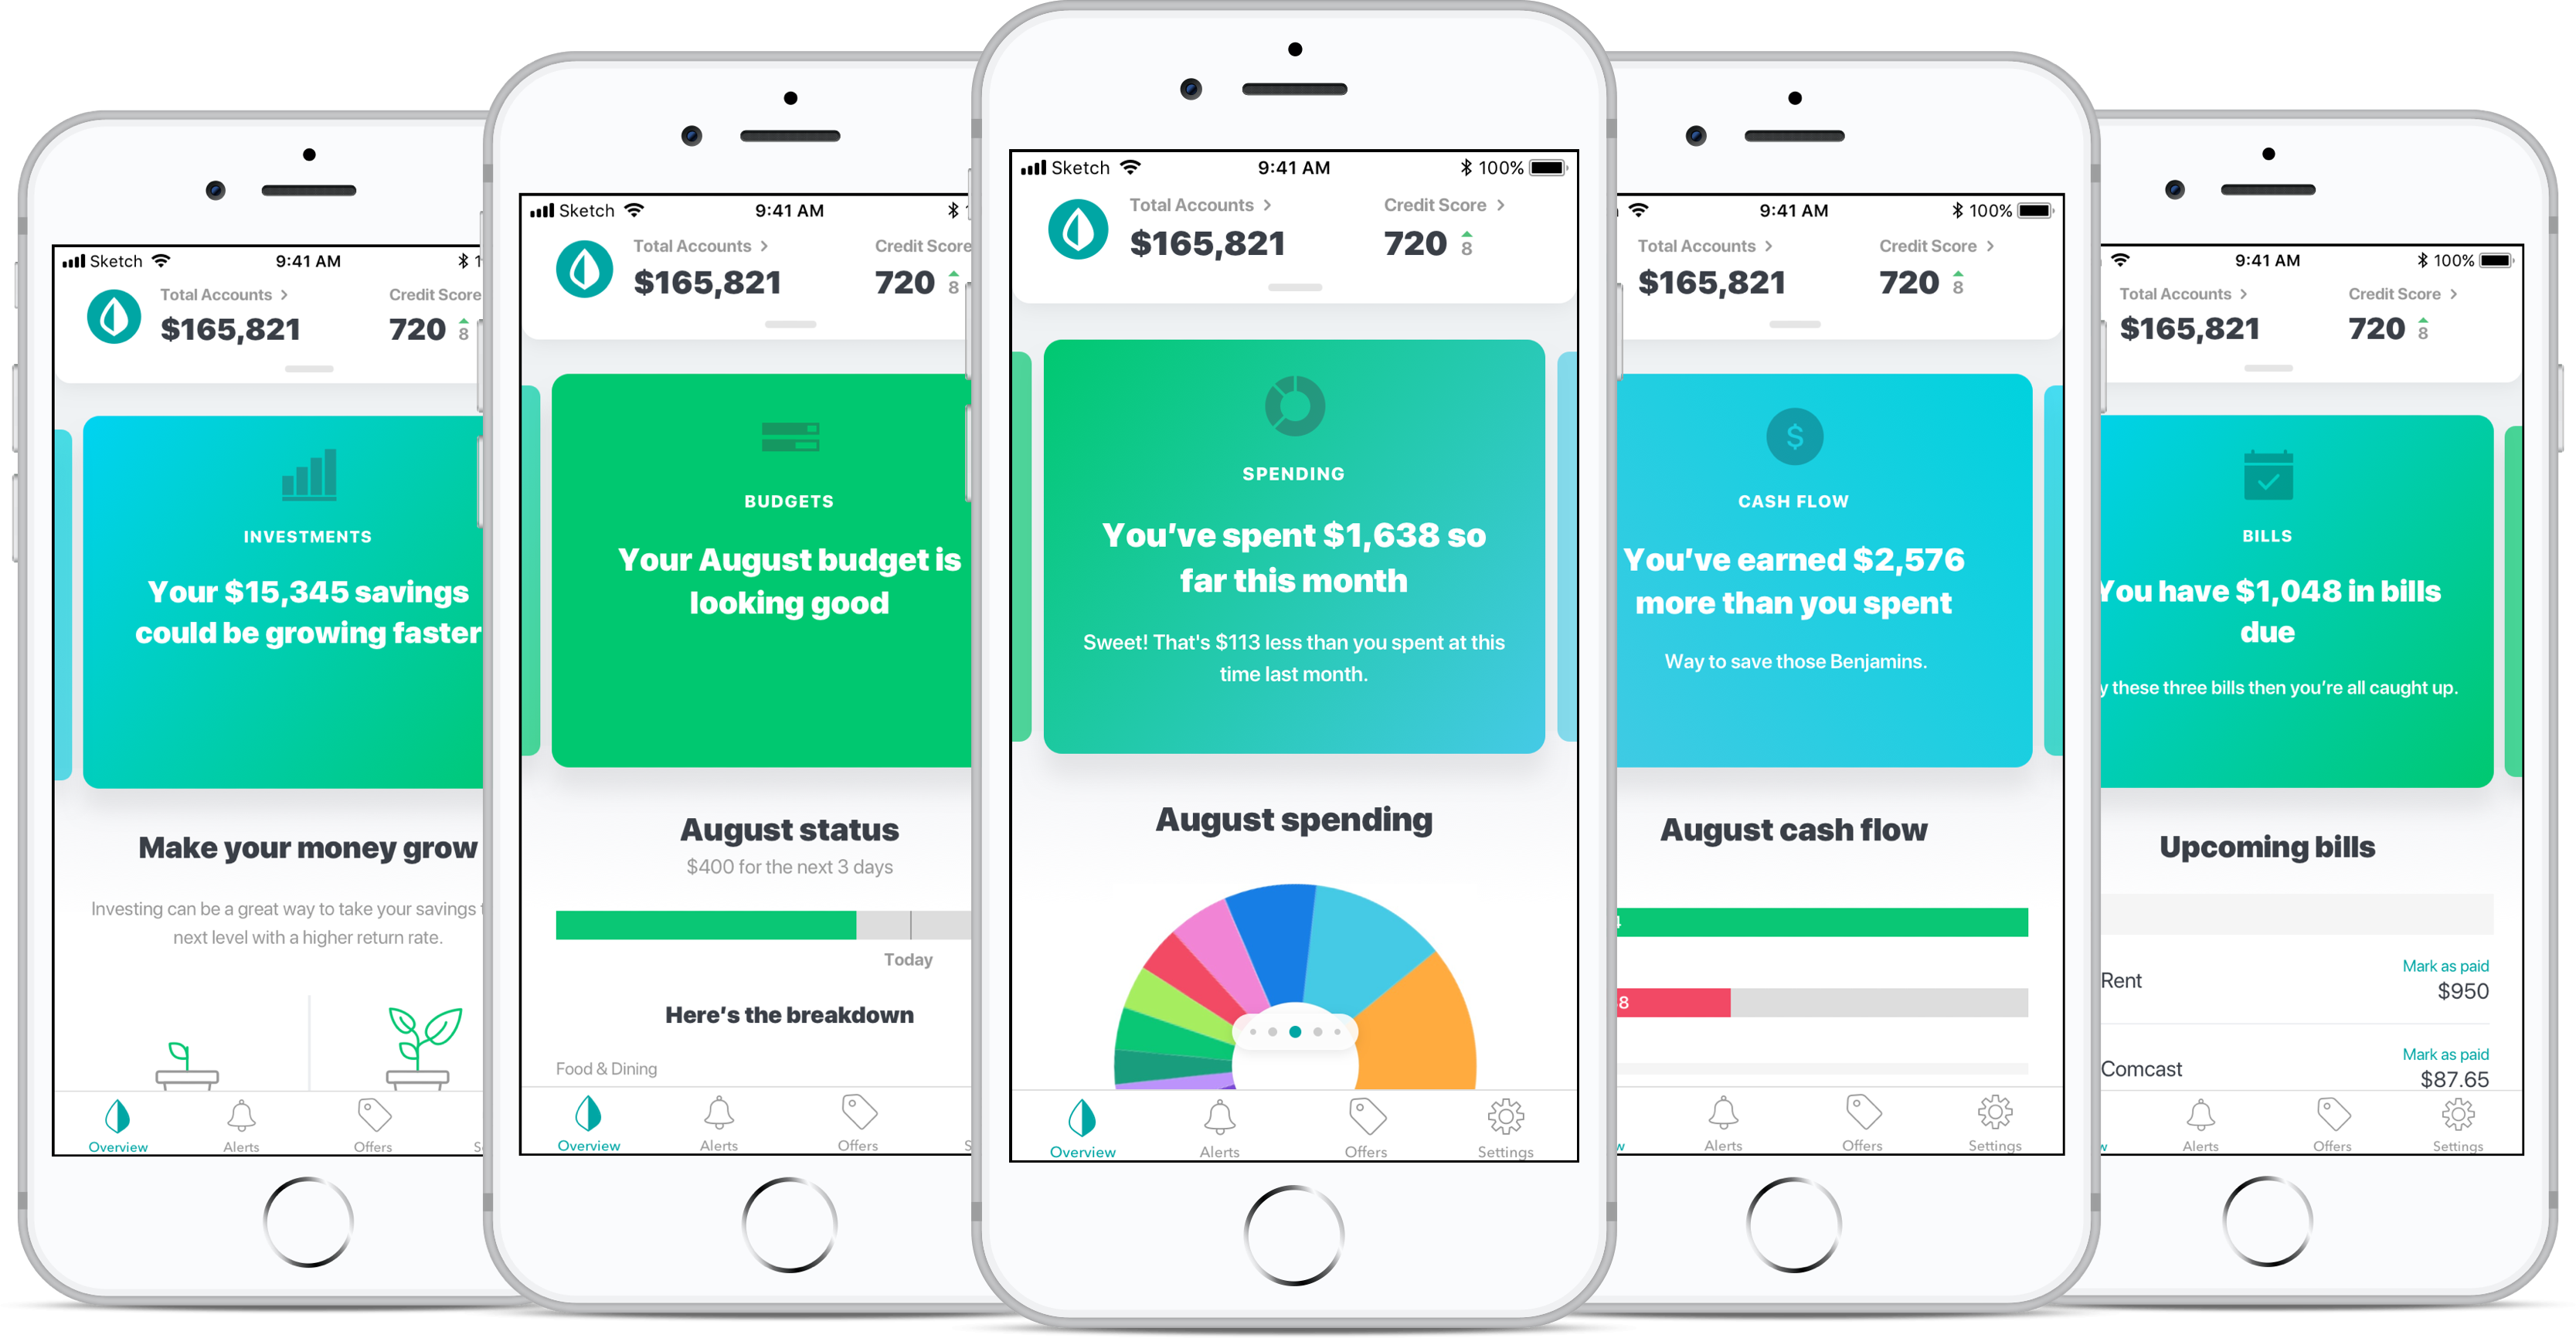 mint updates mobile app with new features